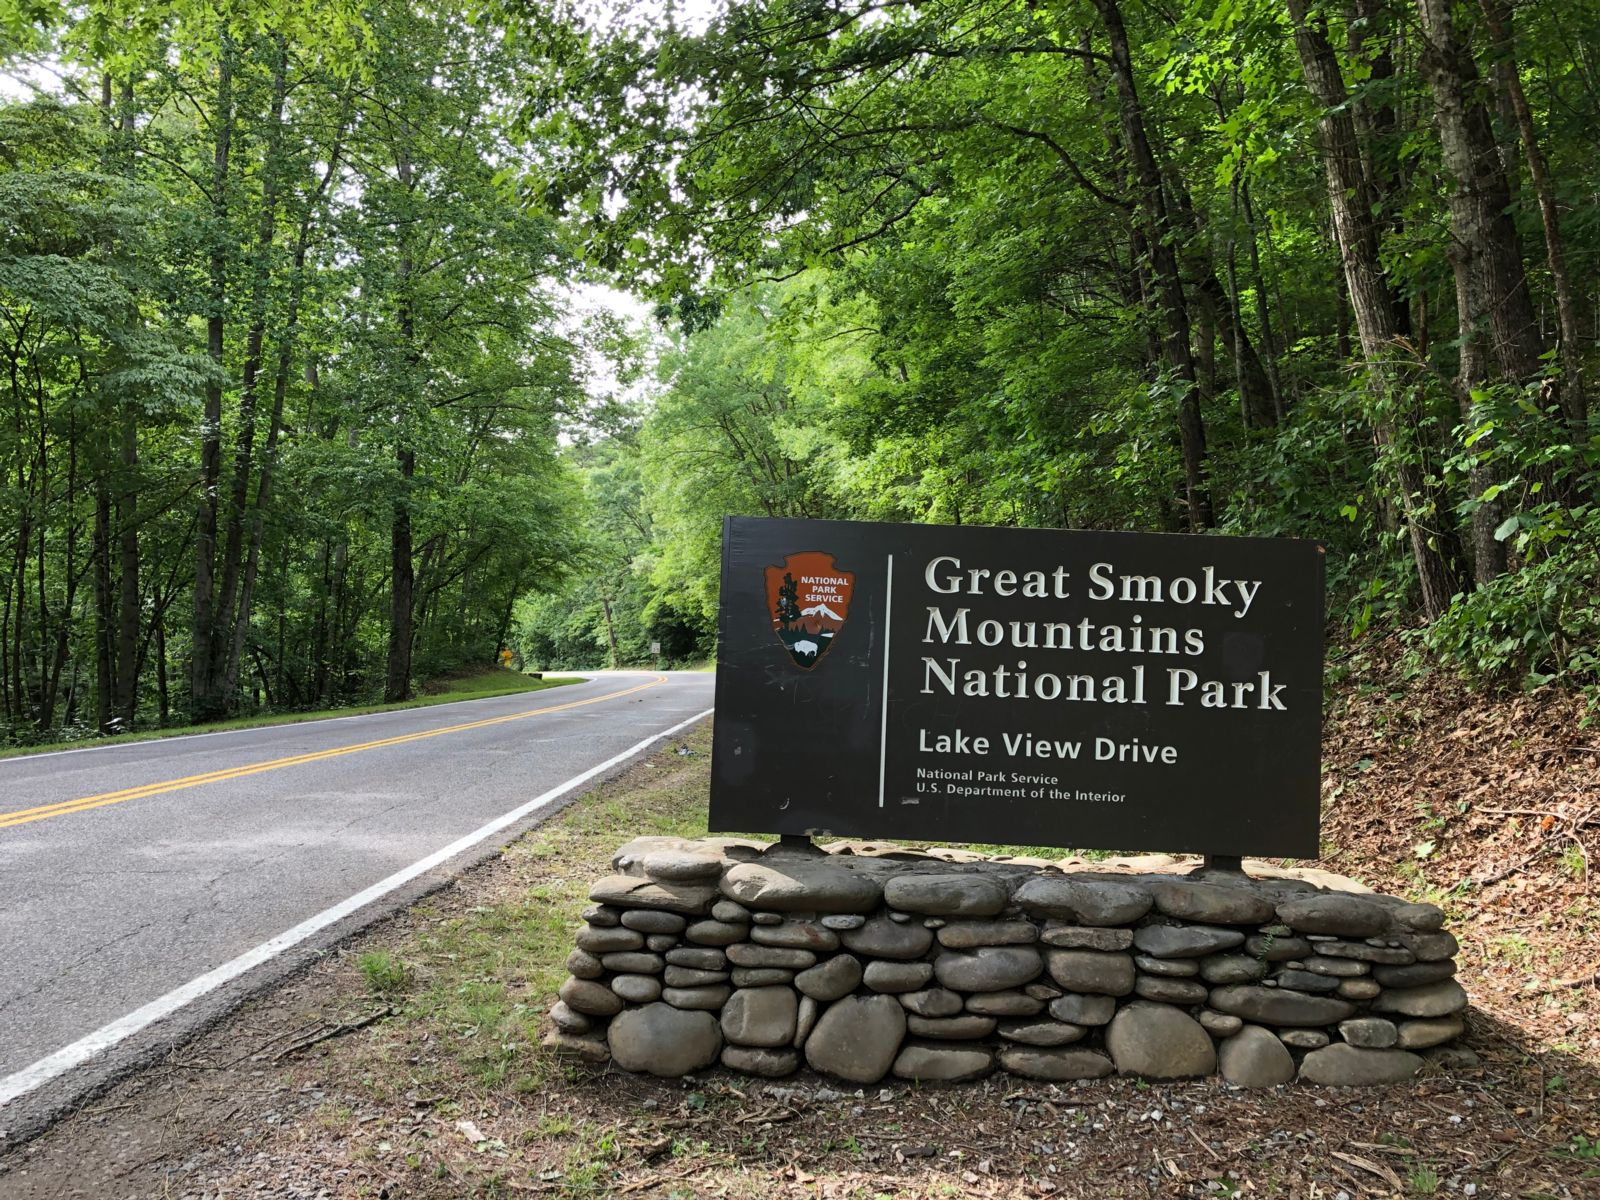 Great Smoky Mountains National Park sign, Lakeview Drive - photo by Jason Frye